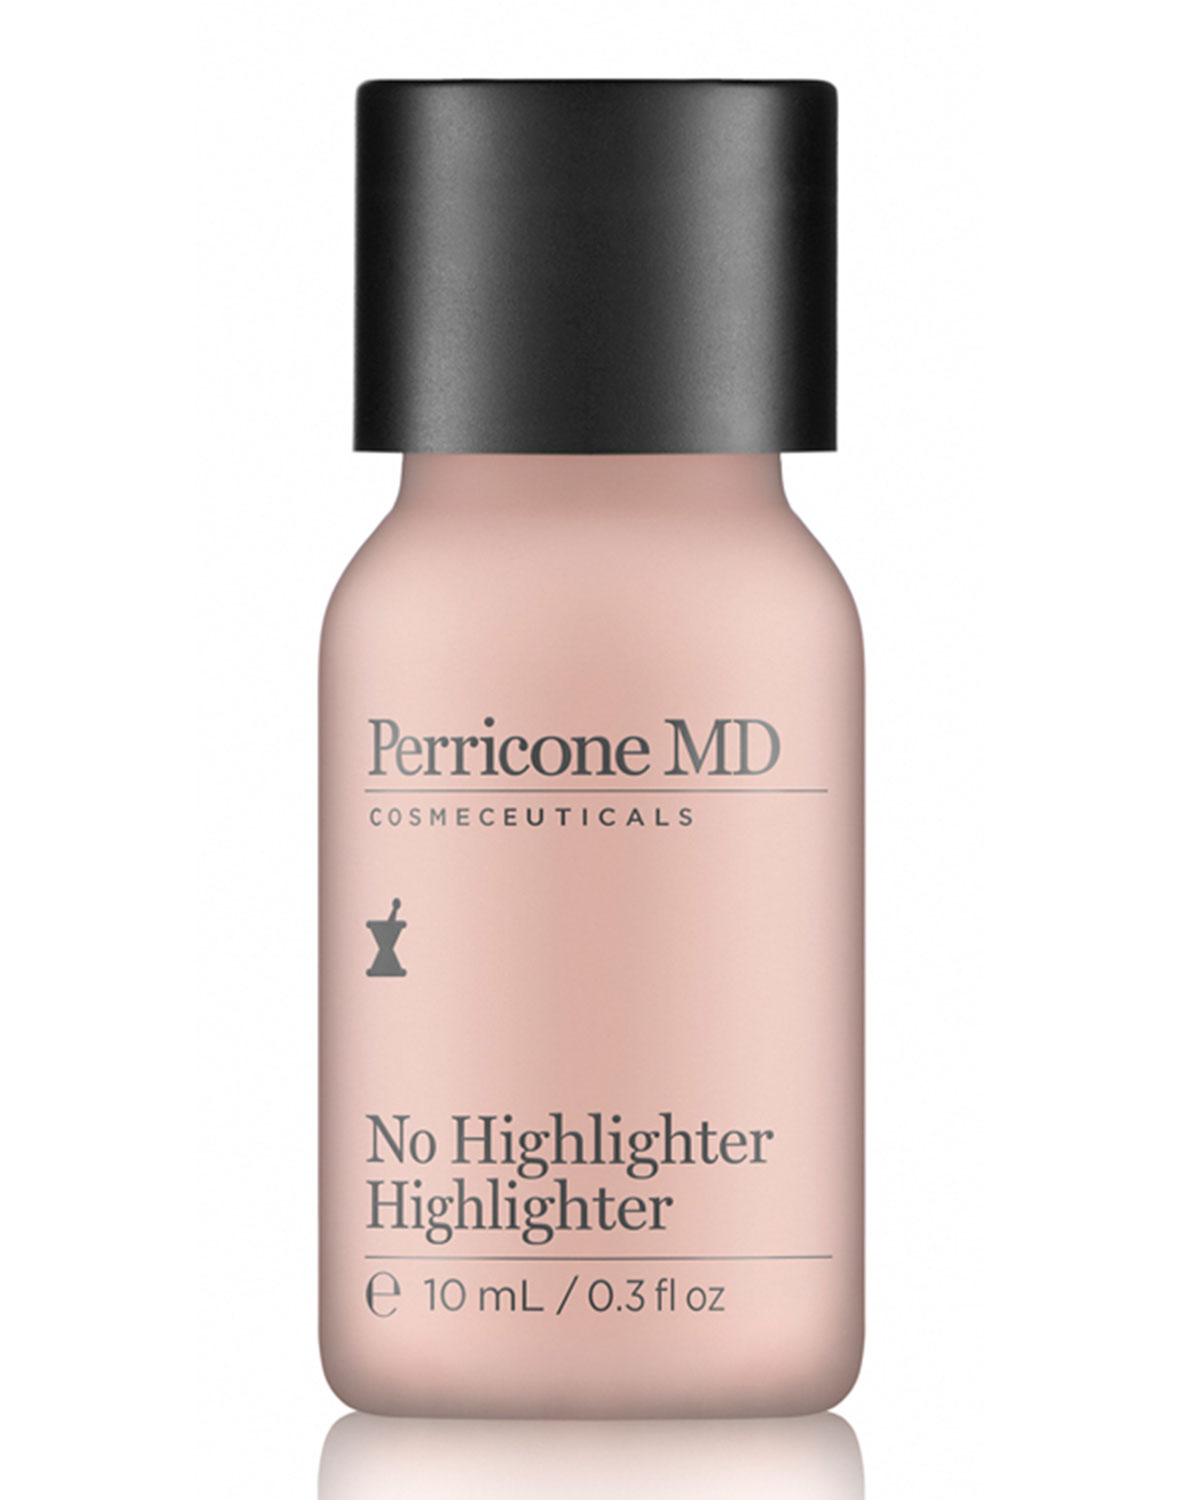 "Perricone Md NO HIGHLIGHTER"" HIGHLIGHTER, 10 ML"""